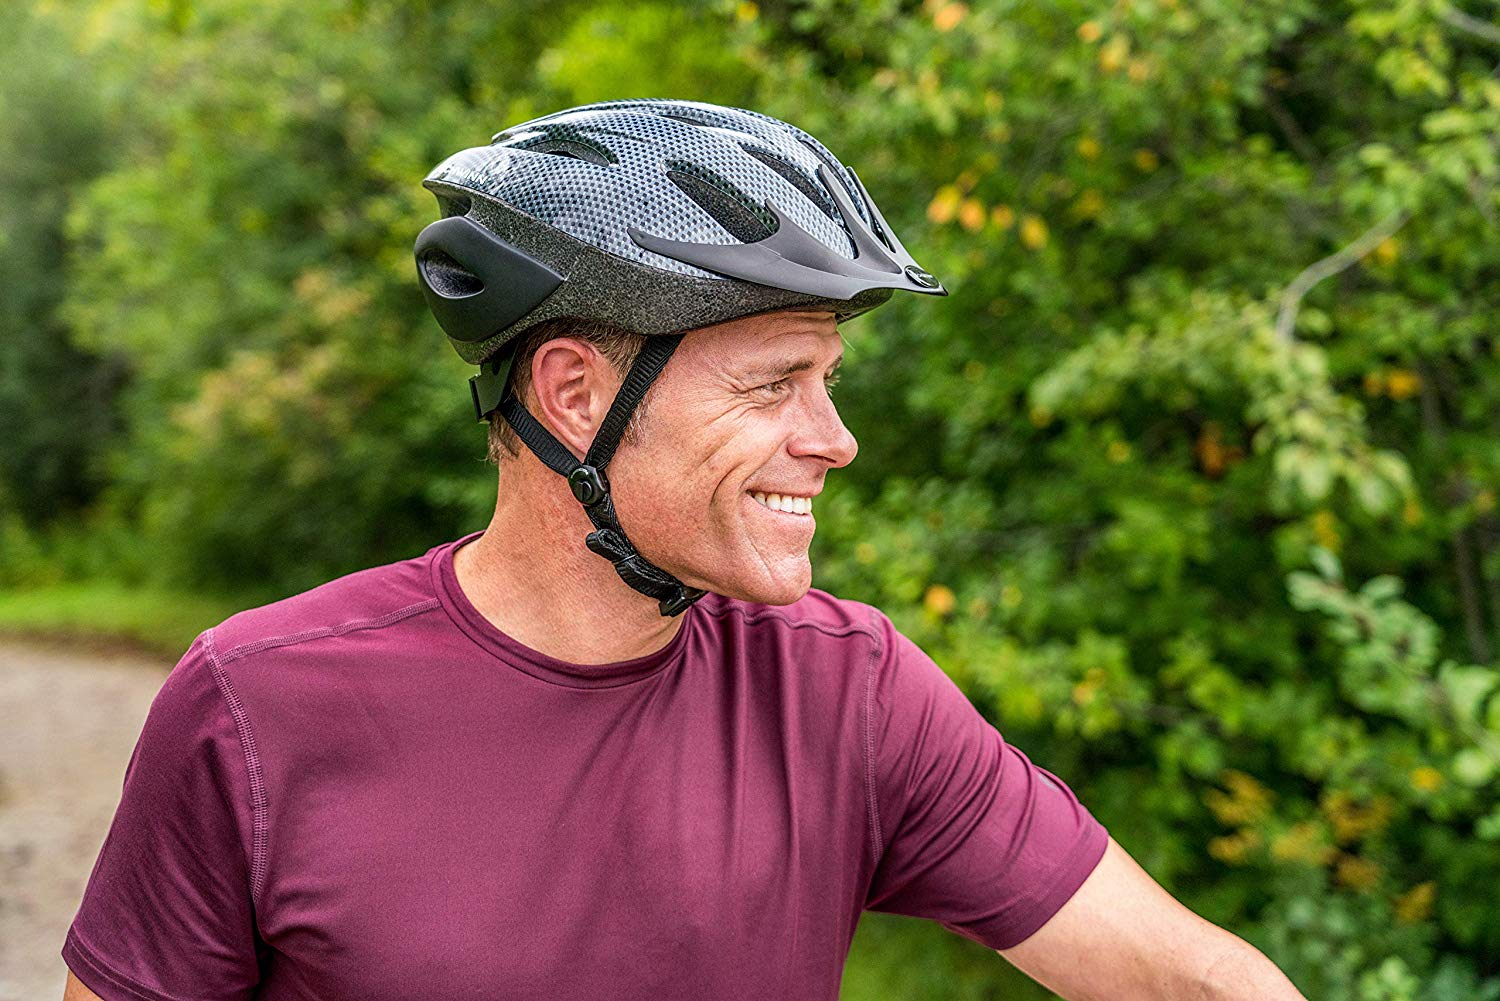 Best Bike Helmets – Buying Guide and Reviews